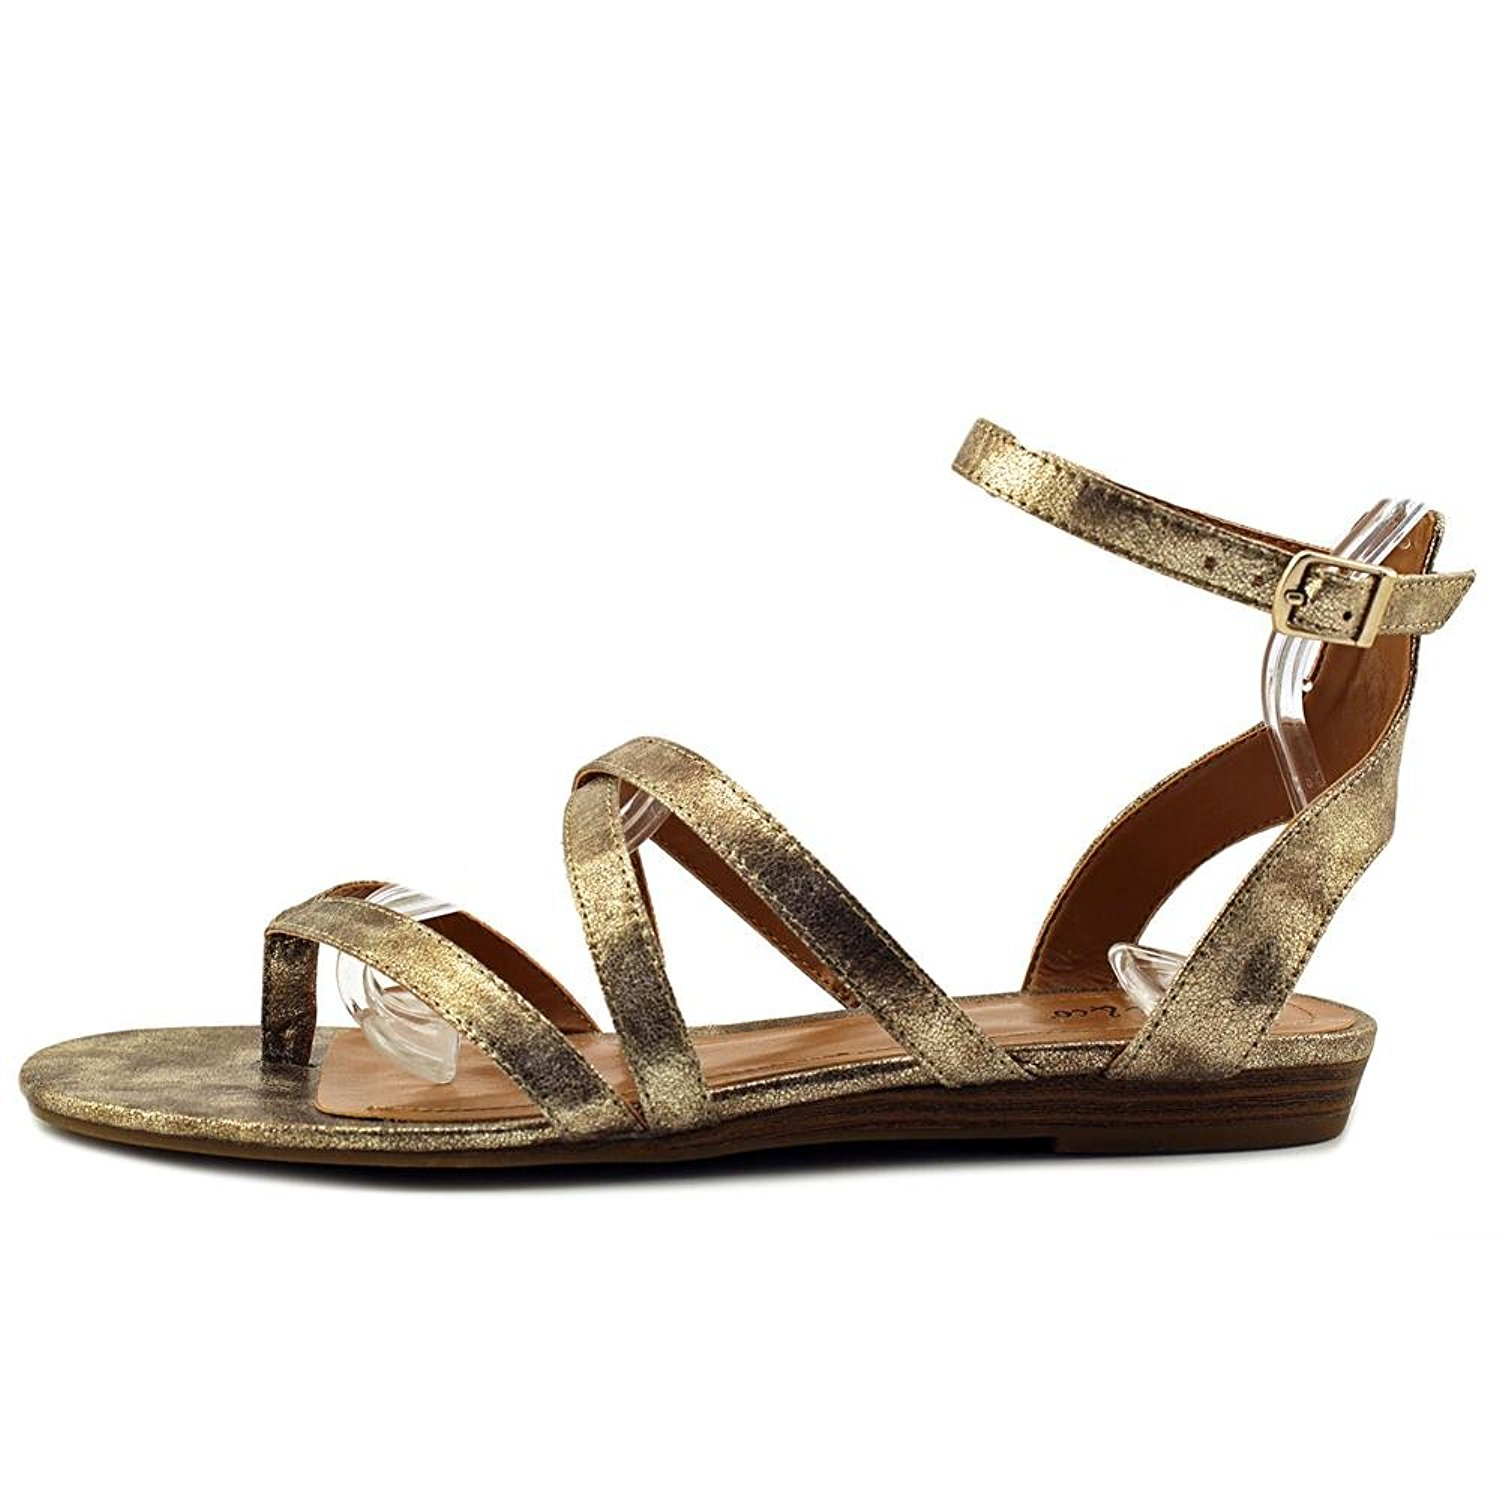 f544eeaf976ea Details about Style & Co. Womens Bahara Open Toe Casual Strappy Sandals